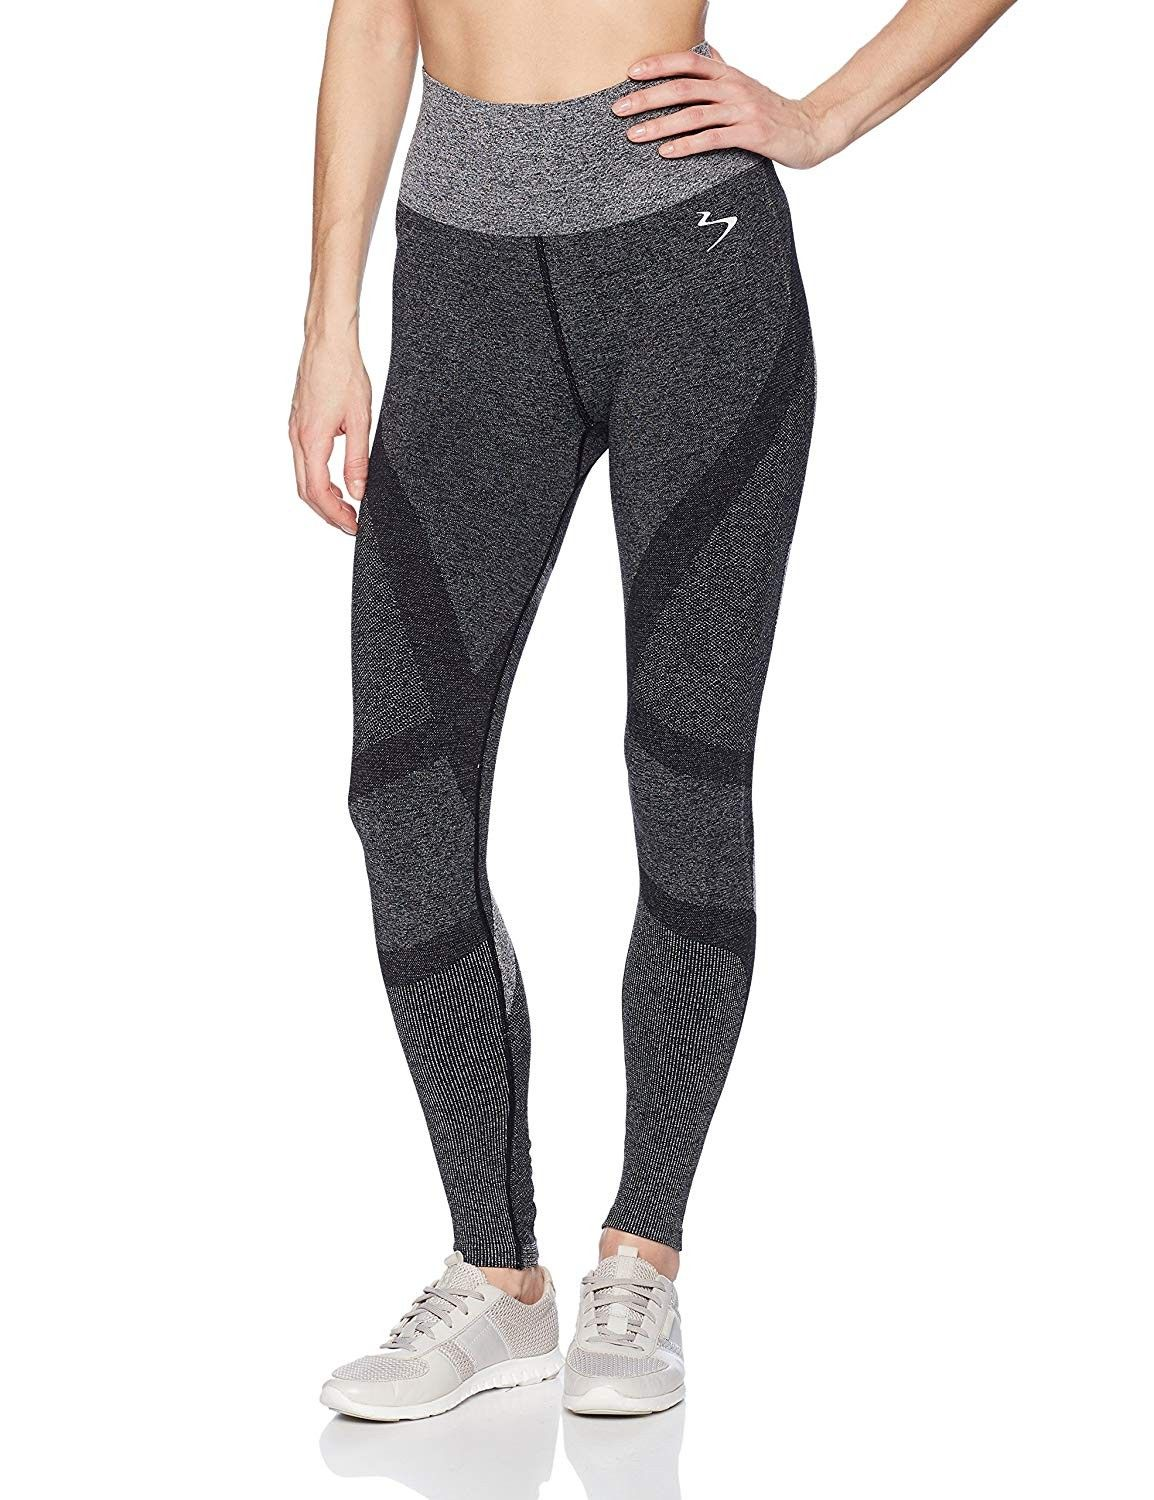 Women's Intent Compression Long Tights - Black - X-Small - C7186AUI35K - Sports & Fitness Clothing,...